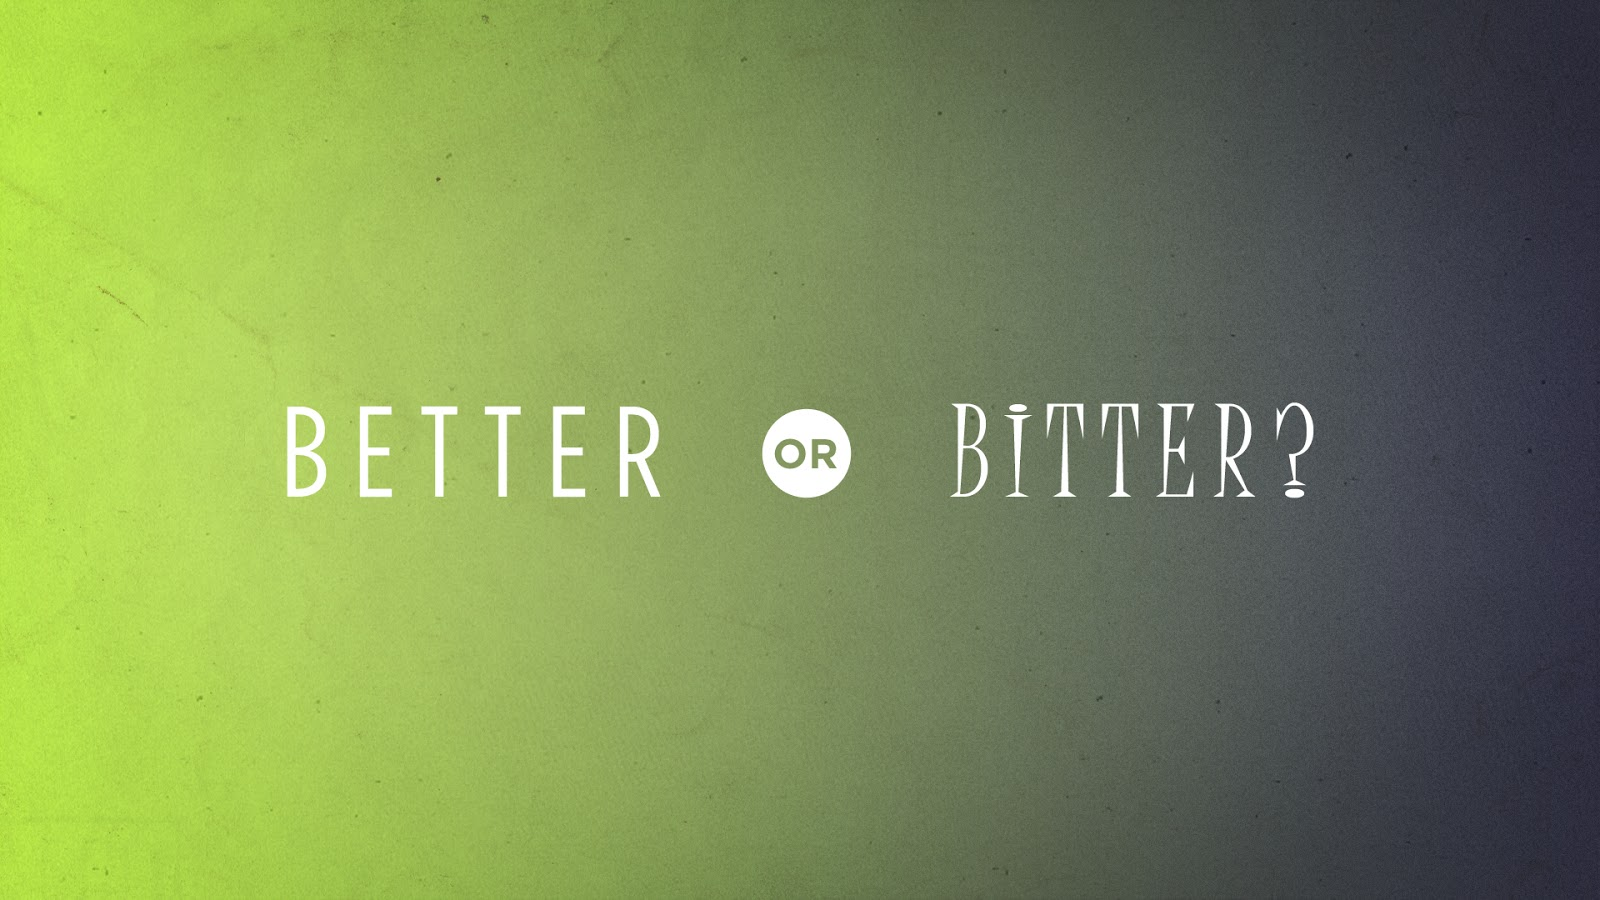 Bitter vs Better